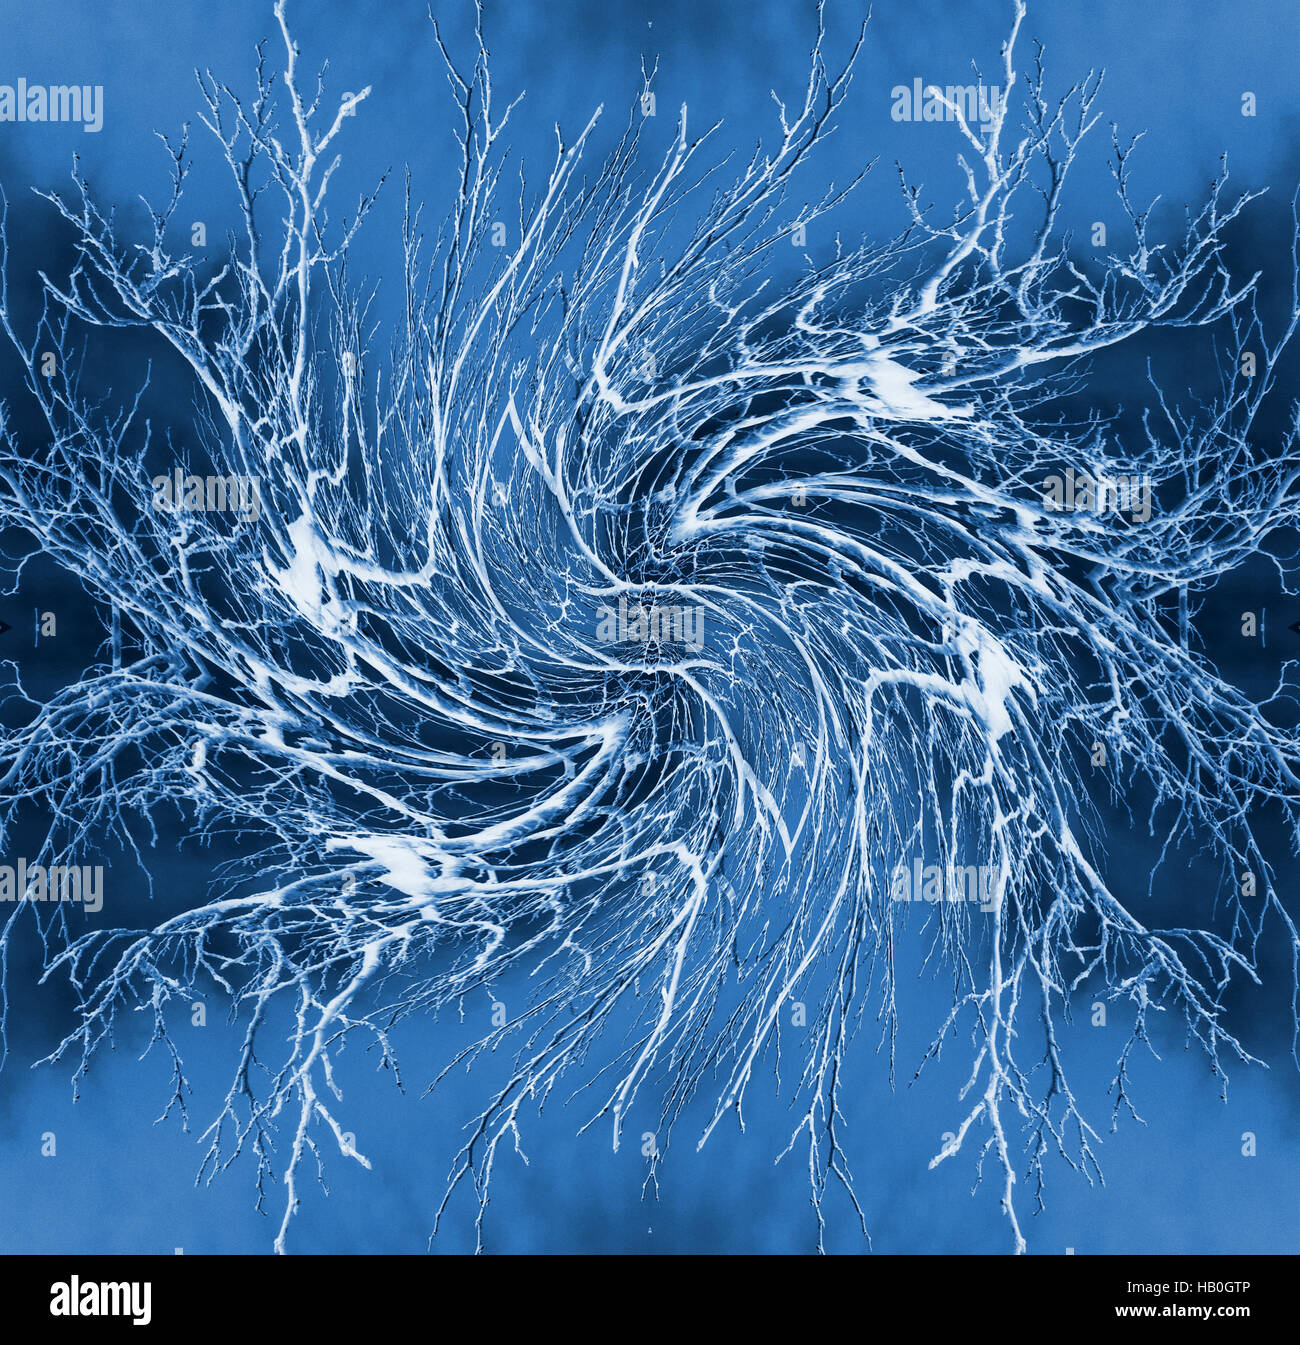 Neural Network - Abstract Illustration - Stock Image